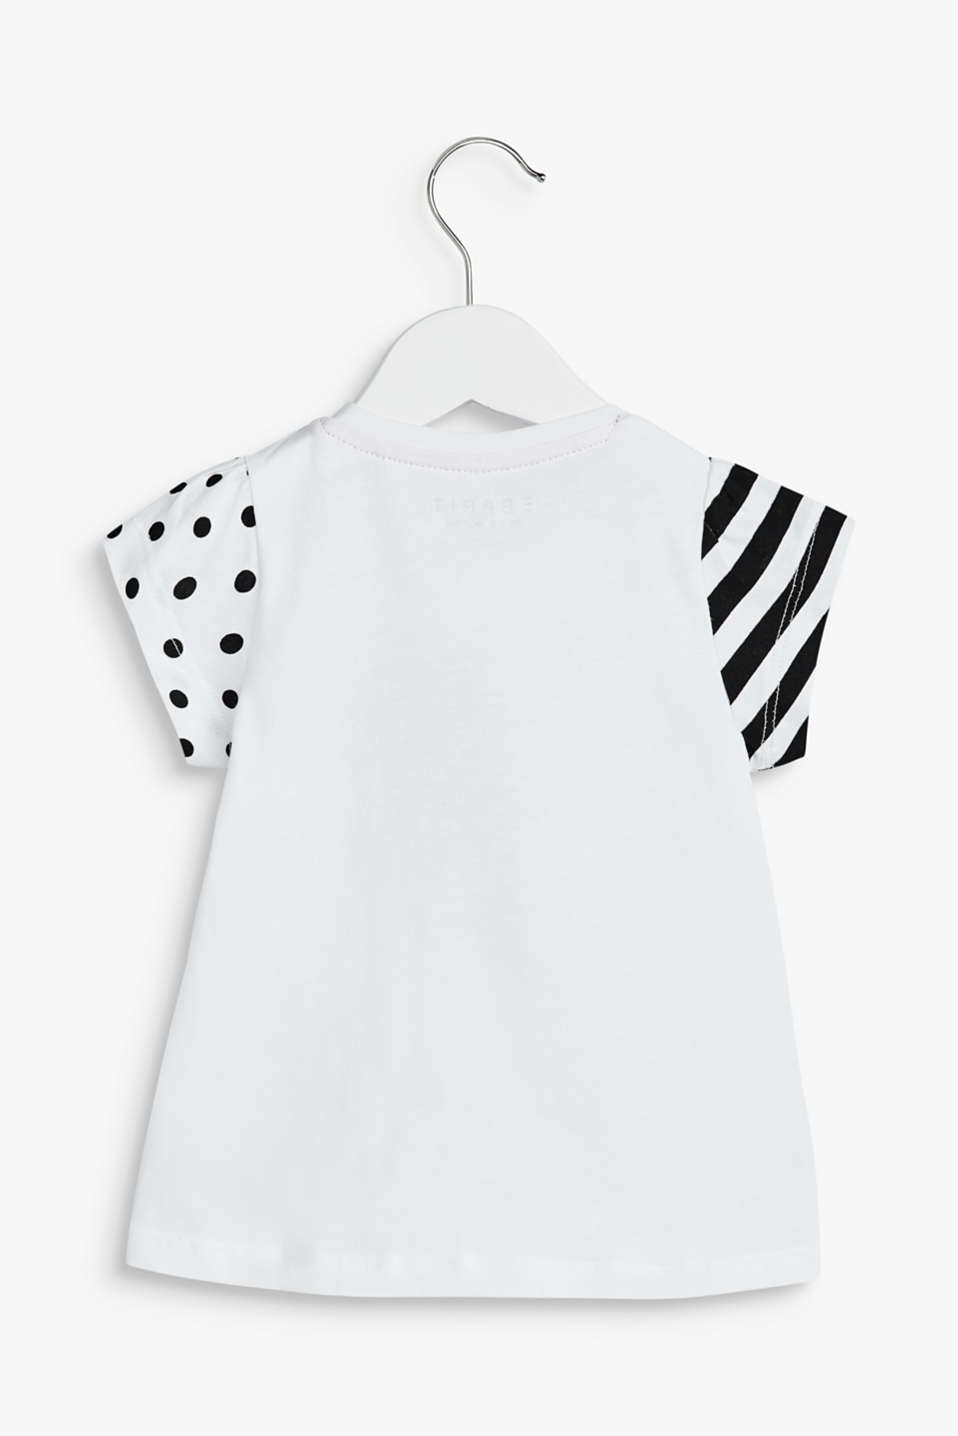 T-shirt with a heart print, 100% cotton, LCWHITE, detail image number 1